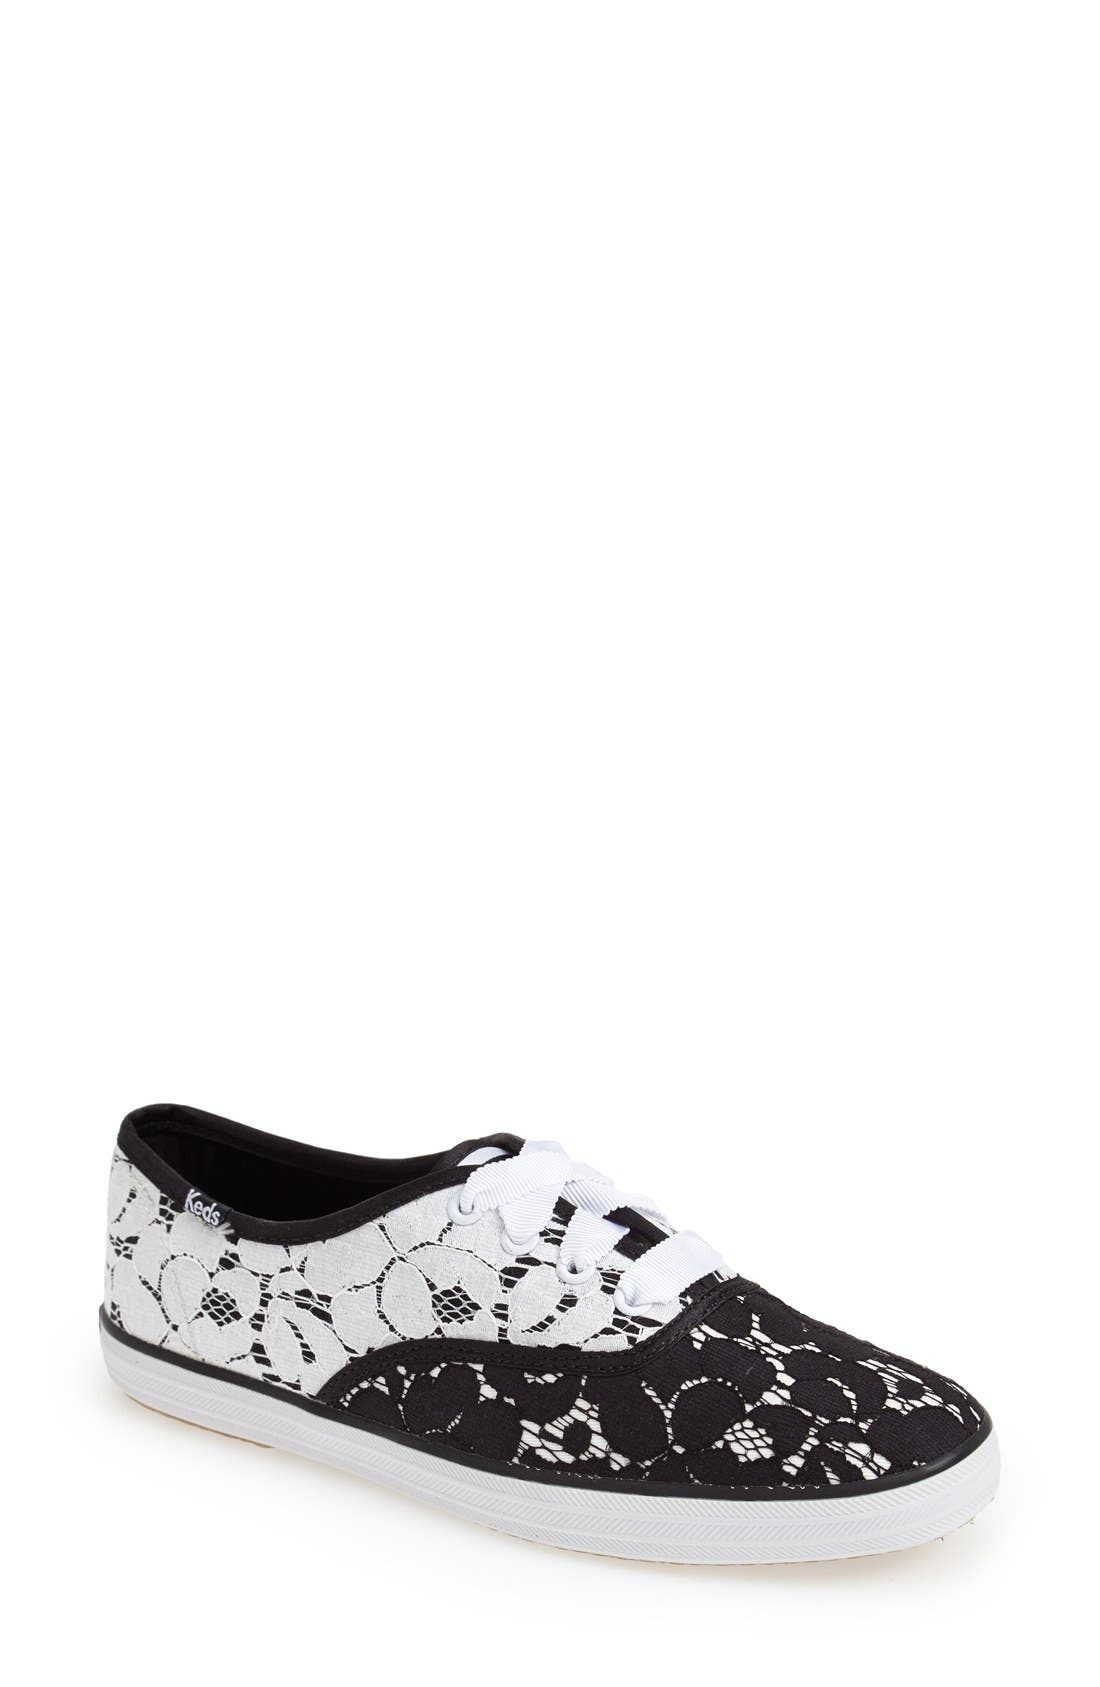 Main Image - Keds® 'Champion - Lace' Sneaker (Women)